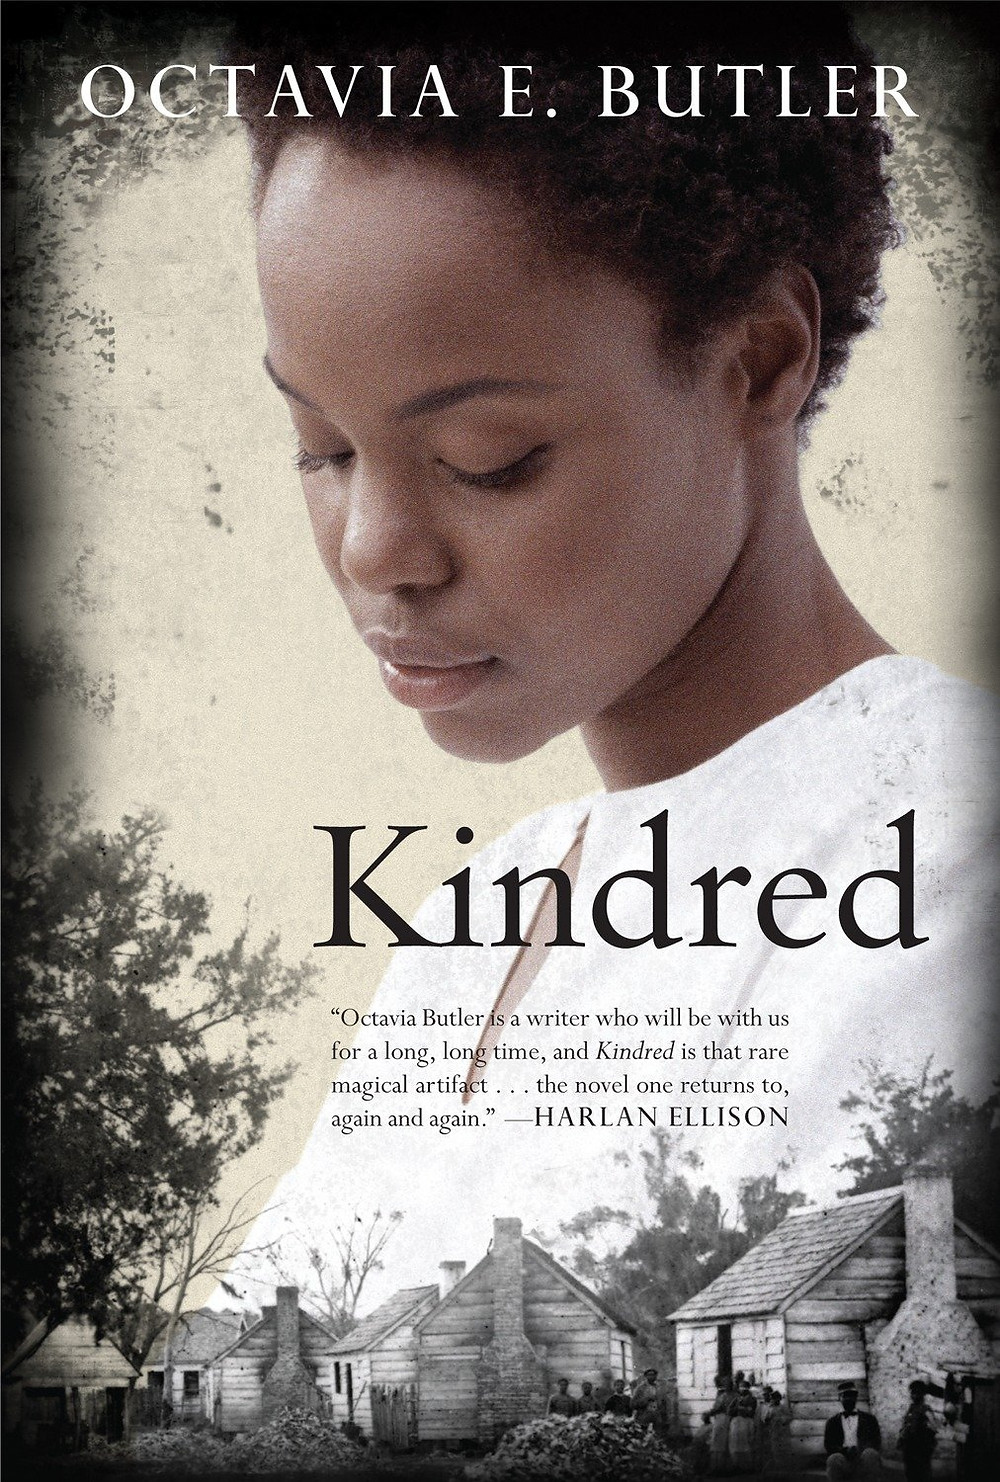 Cover of Kindred book by Octavia Butler